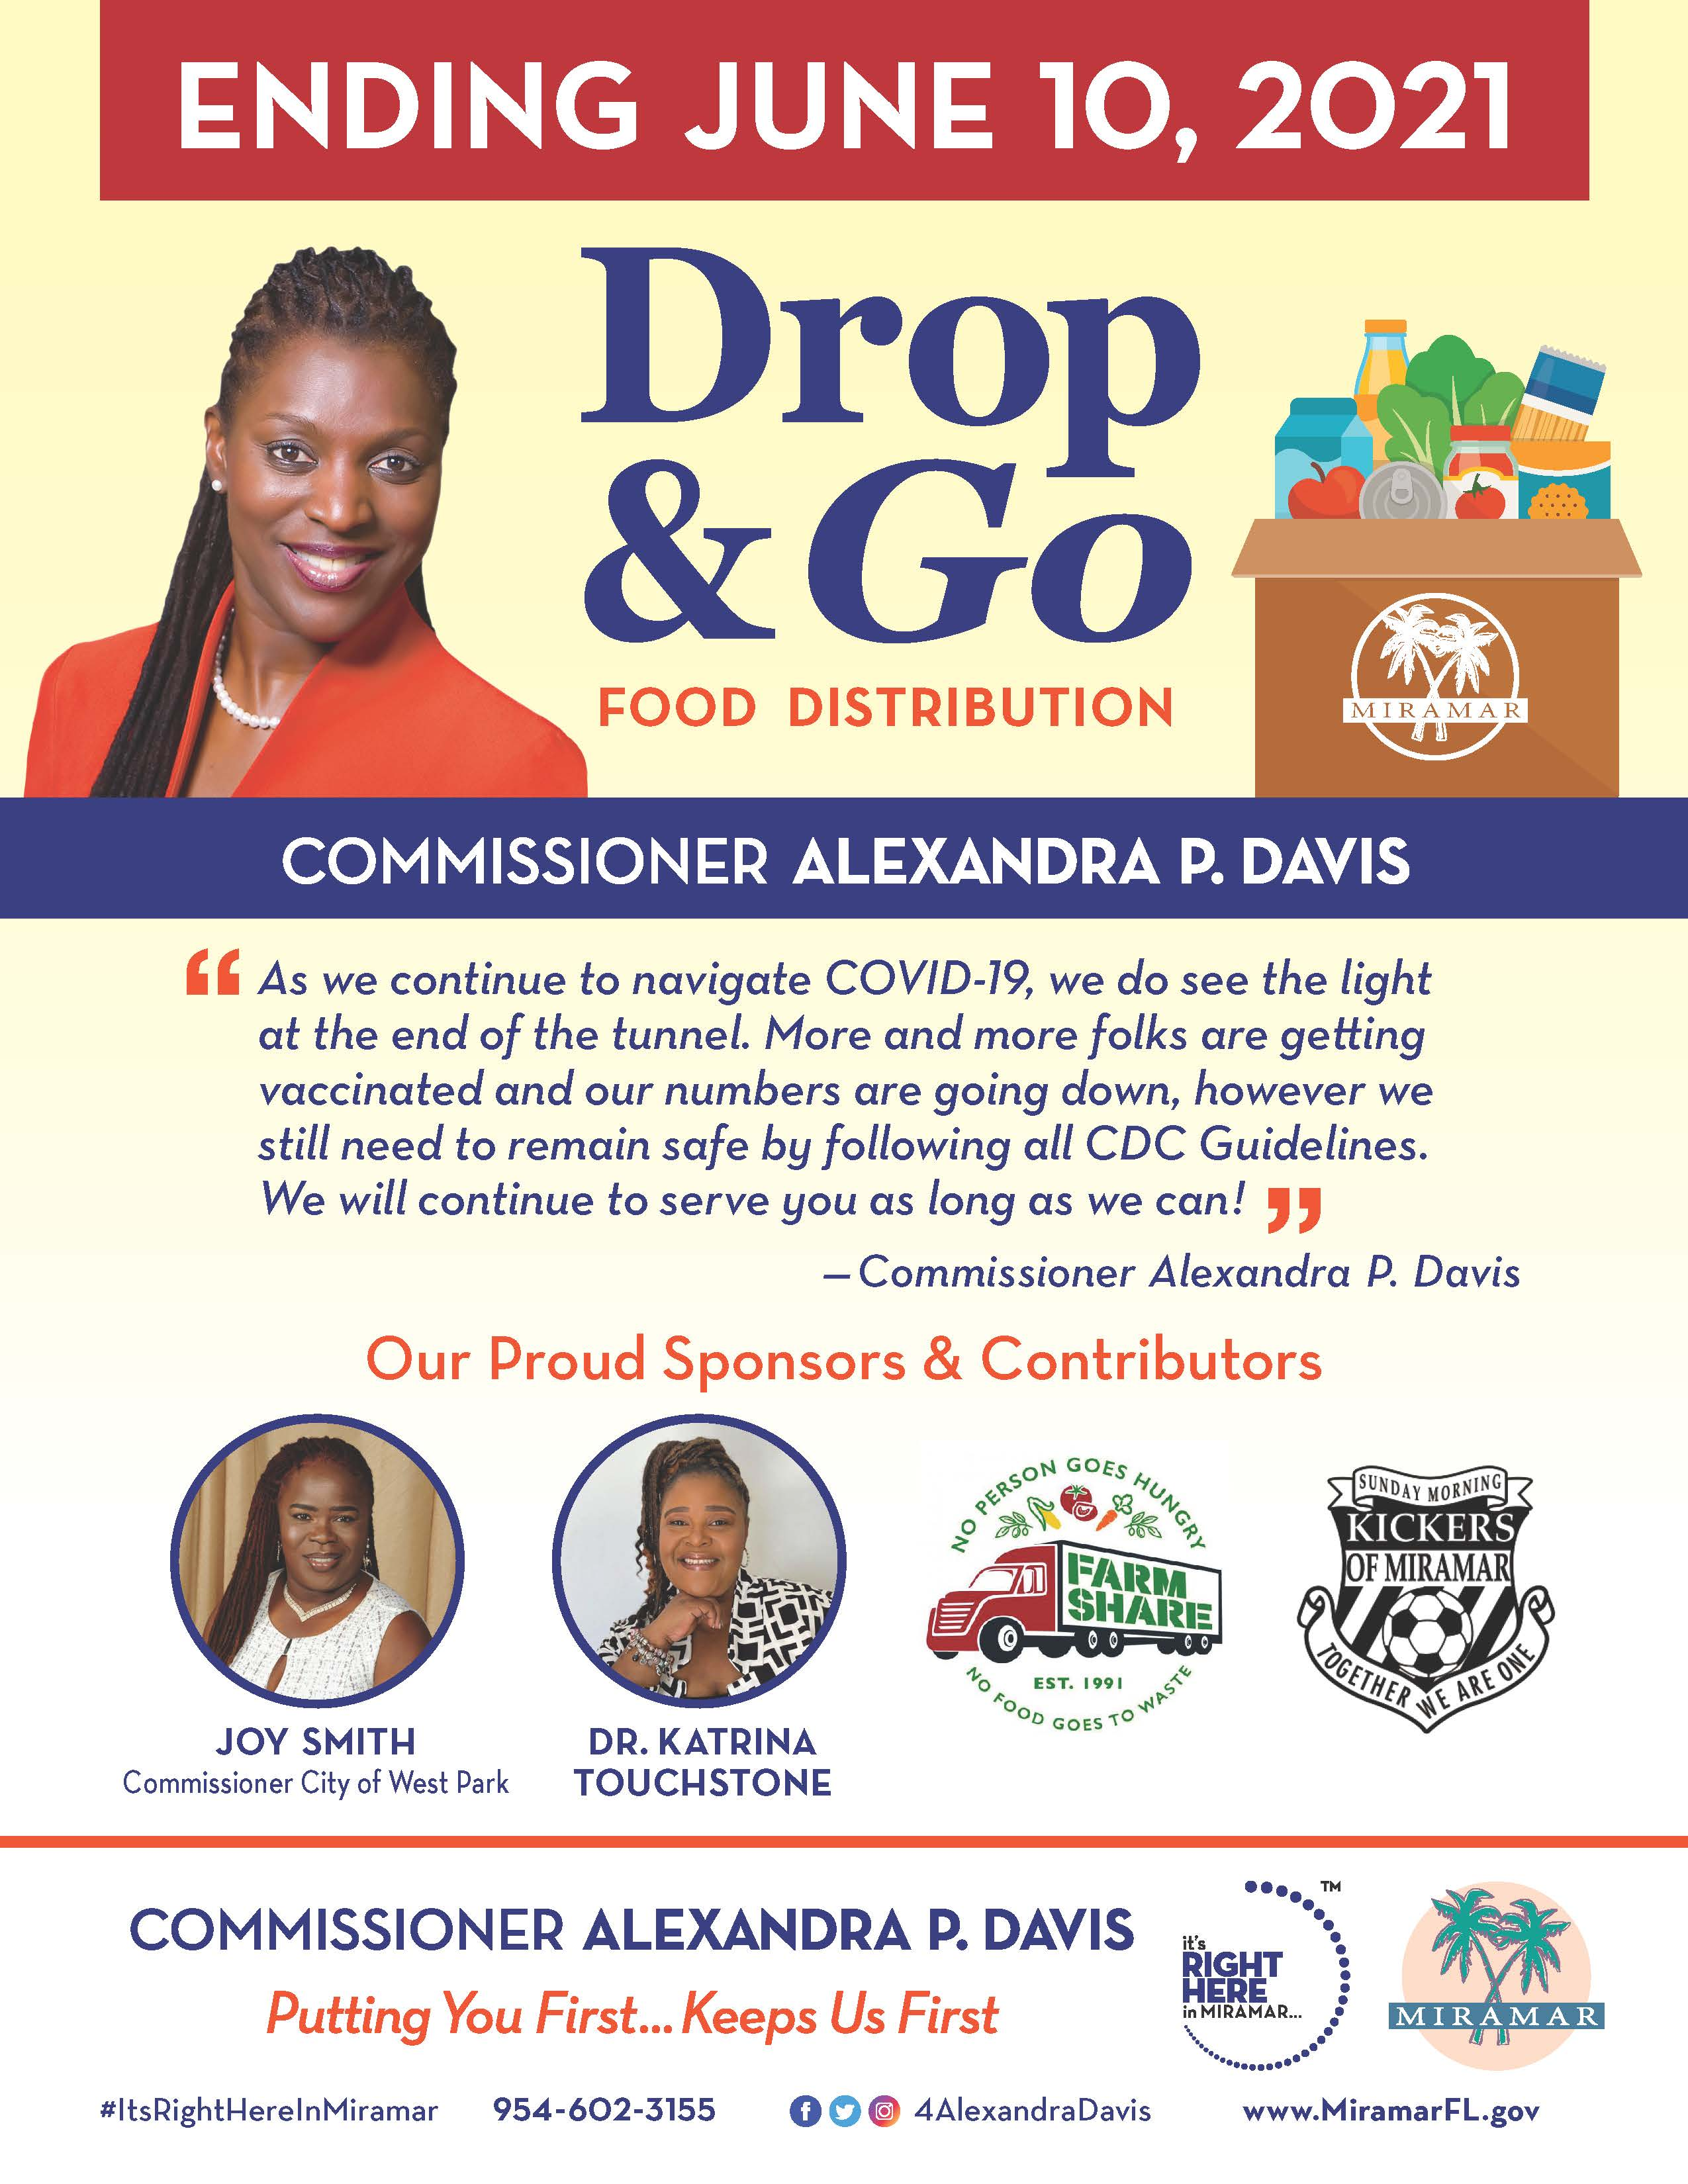 Commissioner Davis Drop and Go Feeding Miramar Initiative Covid-19